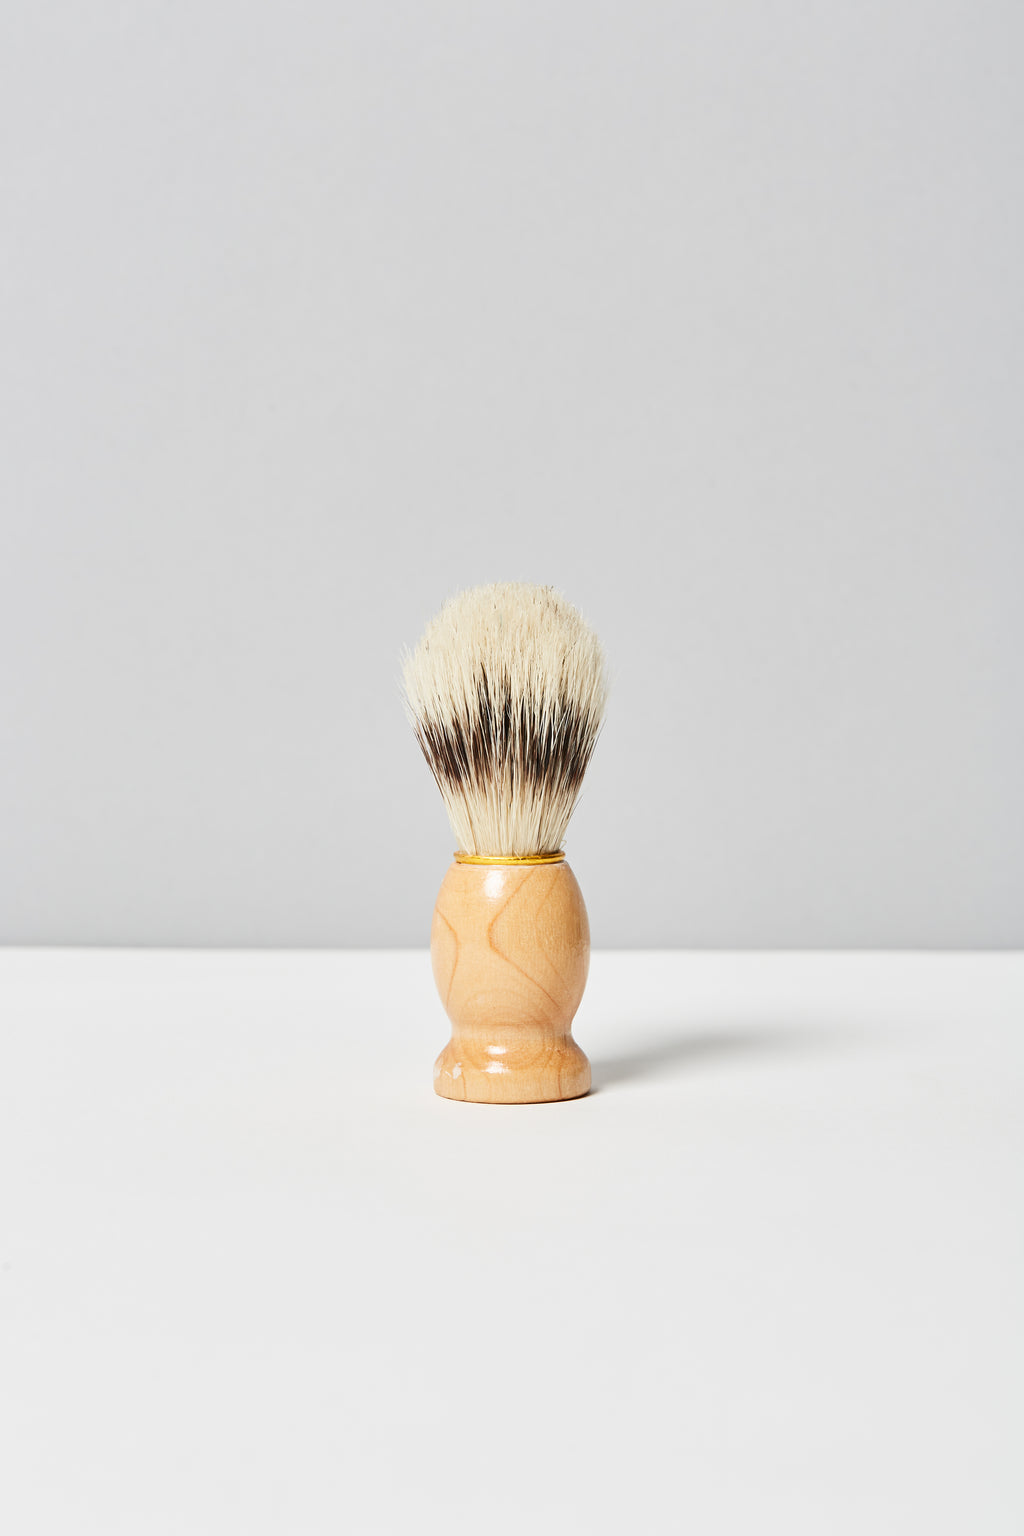 La Tierra Sagrada Hair Powder Brush